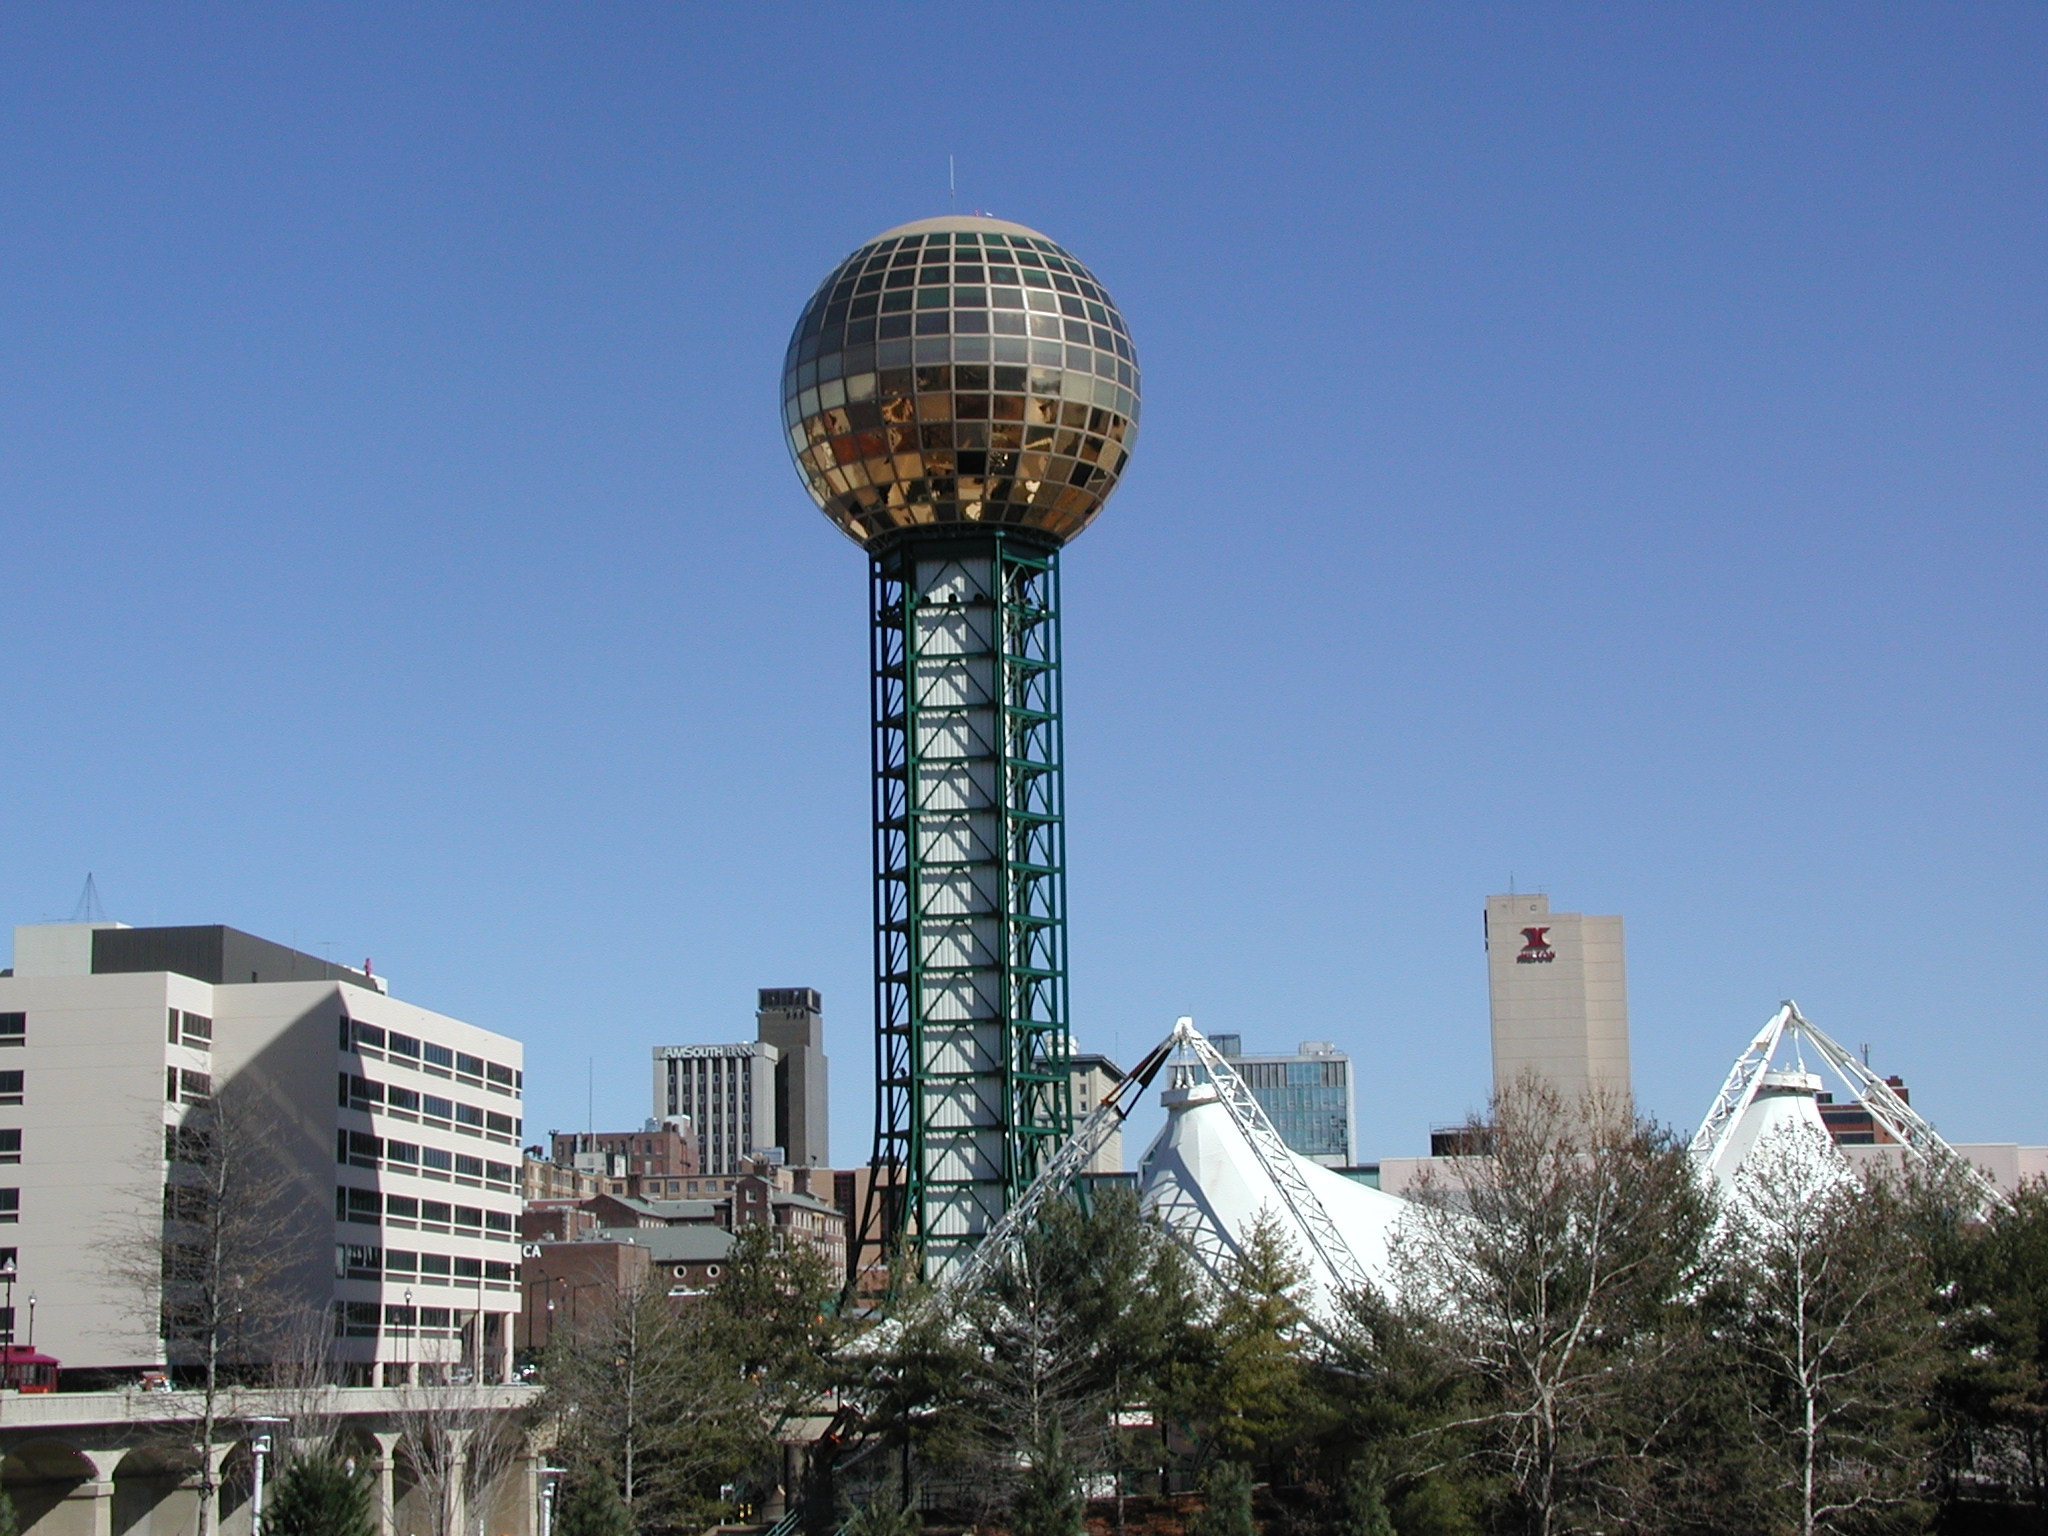 Knoxville Sunsphere - The Sunsphere in Knoxville, Tennessee was built as the theme structure for the 1982 World's Fair. The project architect was Bruce B. Thompson of Community Tectonics in Knoxville, TN, and the structural engineers were Socrates A. Ioannides and Jack H. Horner of Stanley D. Lindsey and Associates of Nashville, TN.